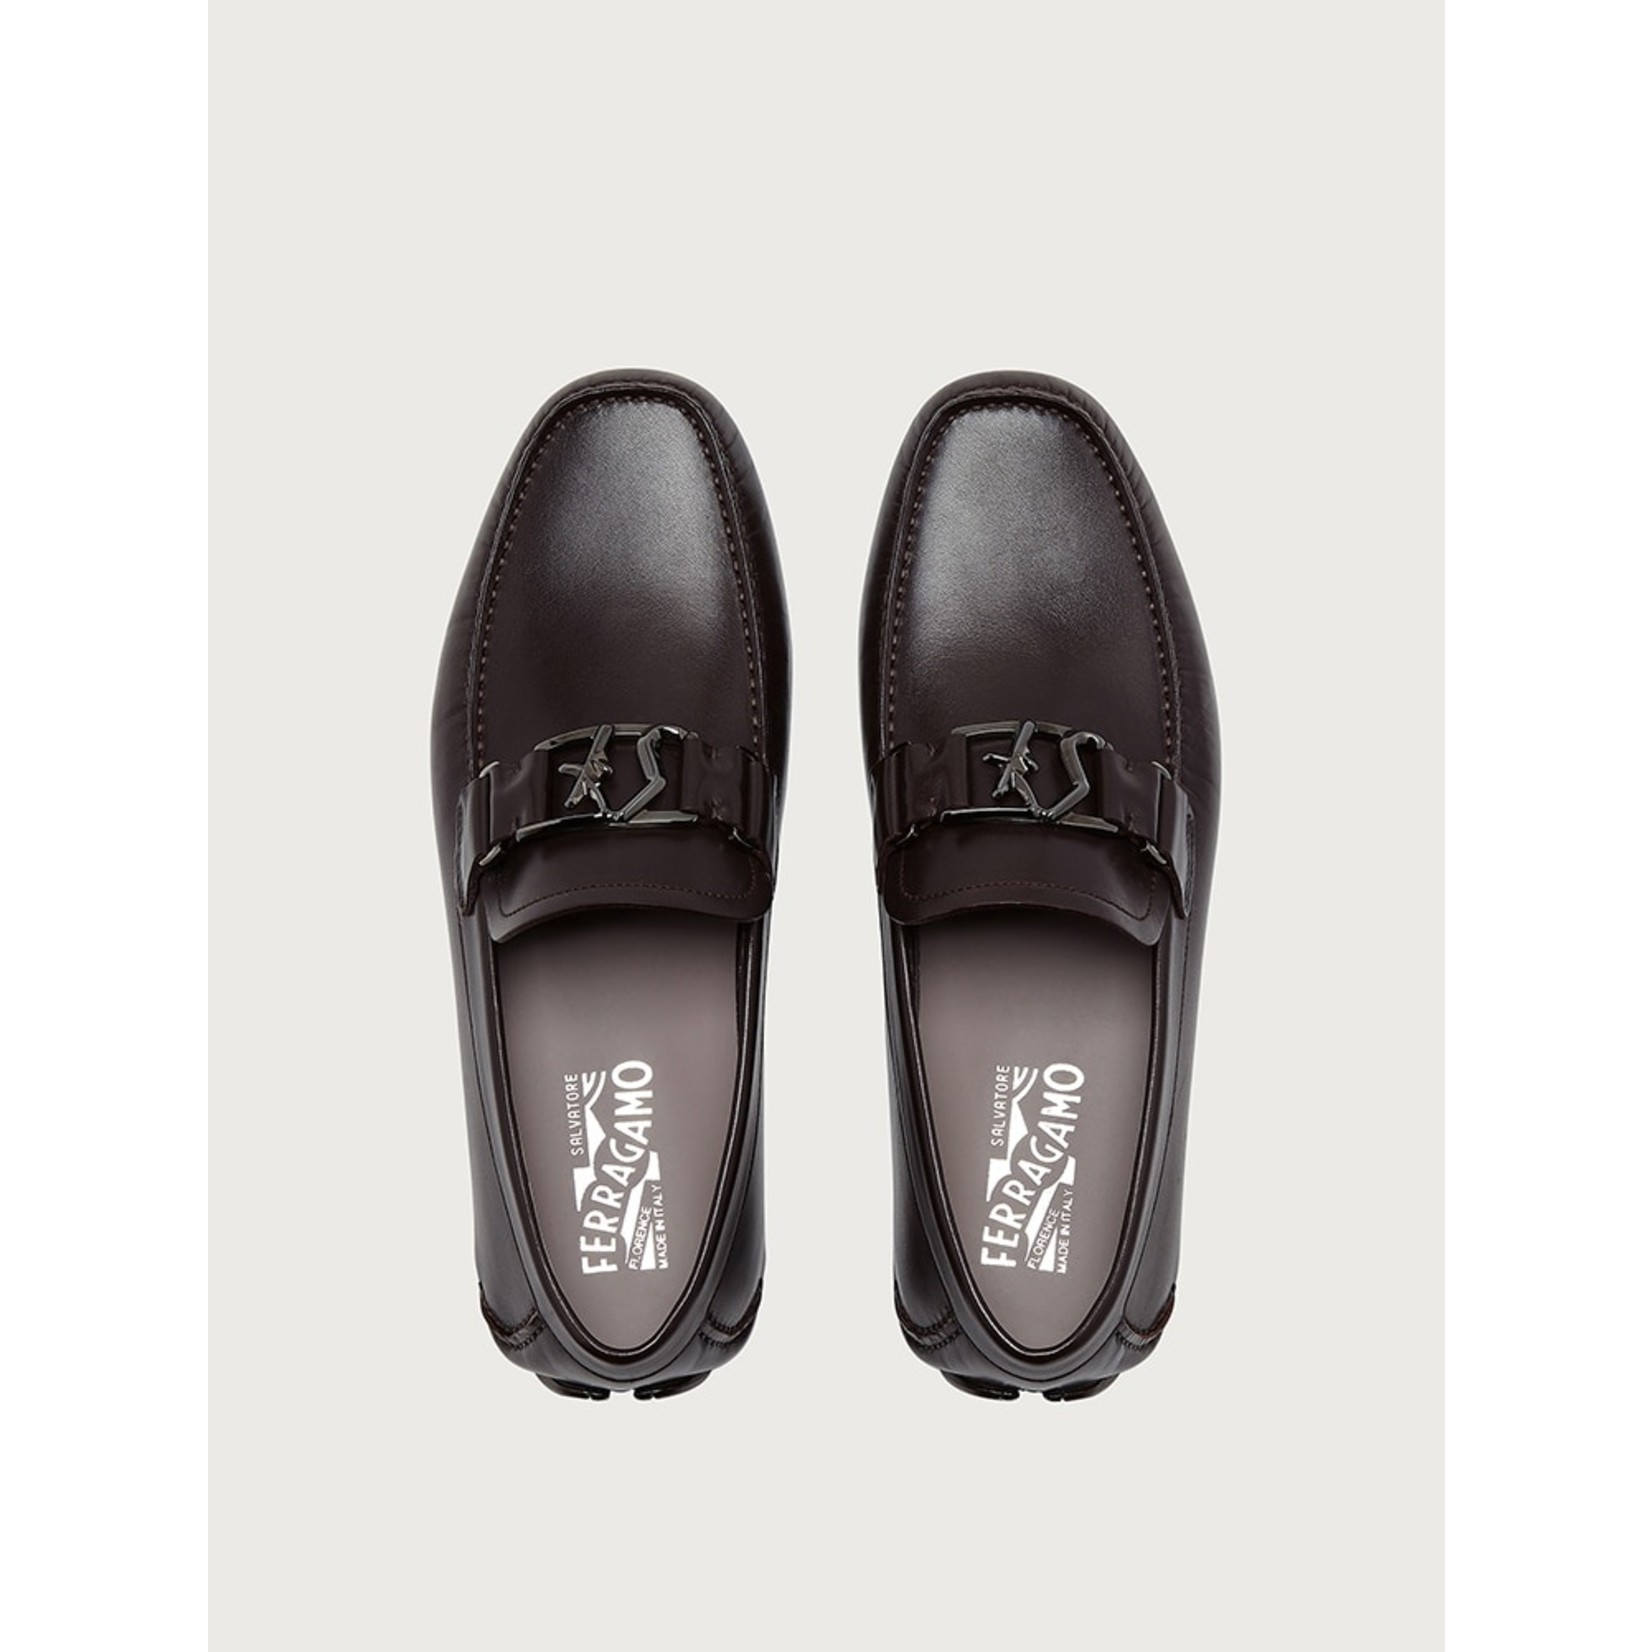 SALVATORE FERRAGAMO SALVATORE FERRAGAMO - LOAFER PETER 741585